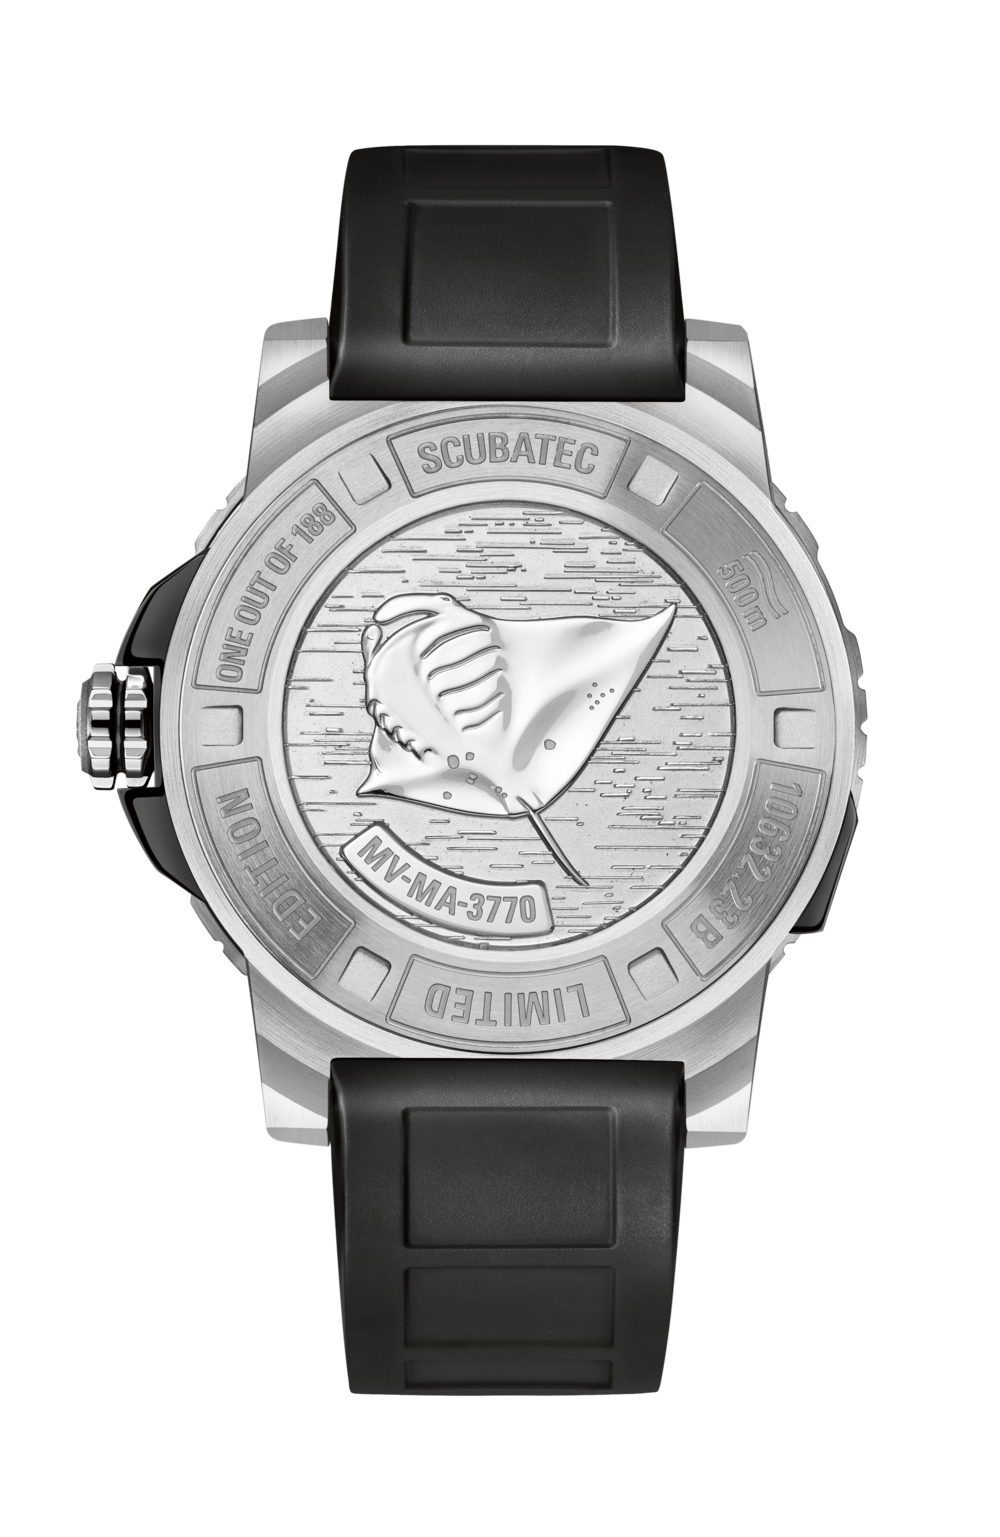 CFB Manta Trust Watch_ID Engraving